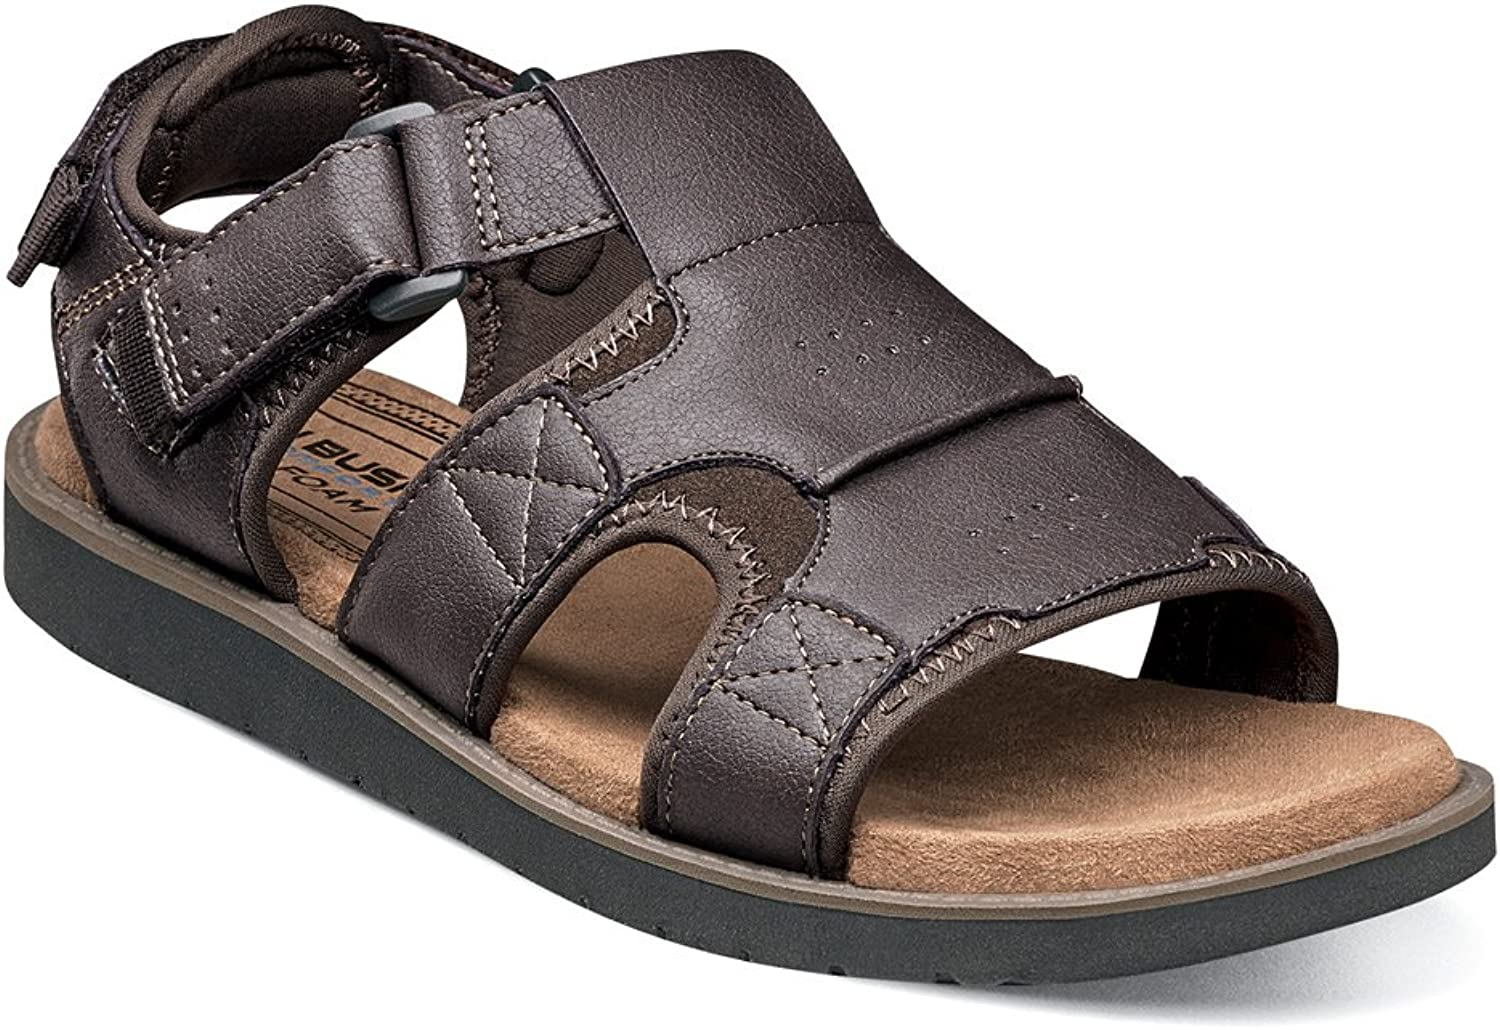 Nunn Bush Men's Boardwalk Fisherman Sandal Brown Crazy Horse 13 M